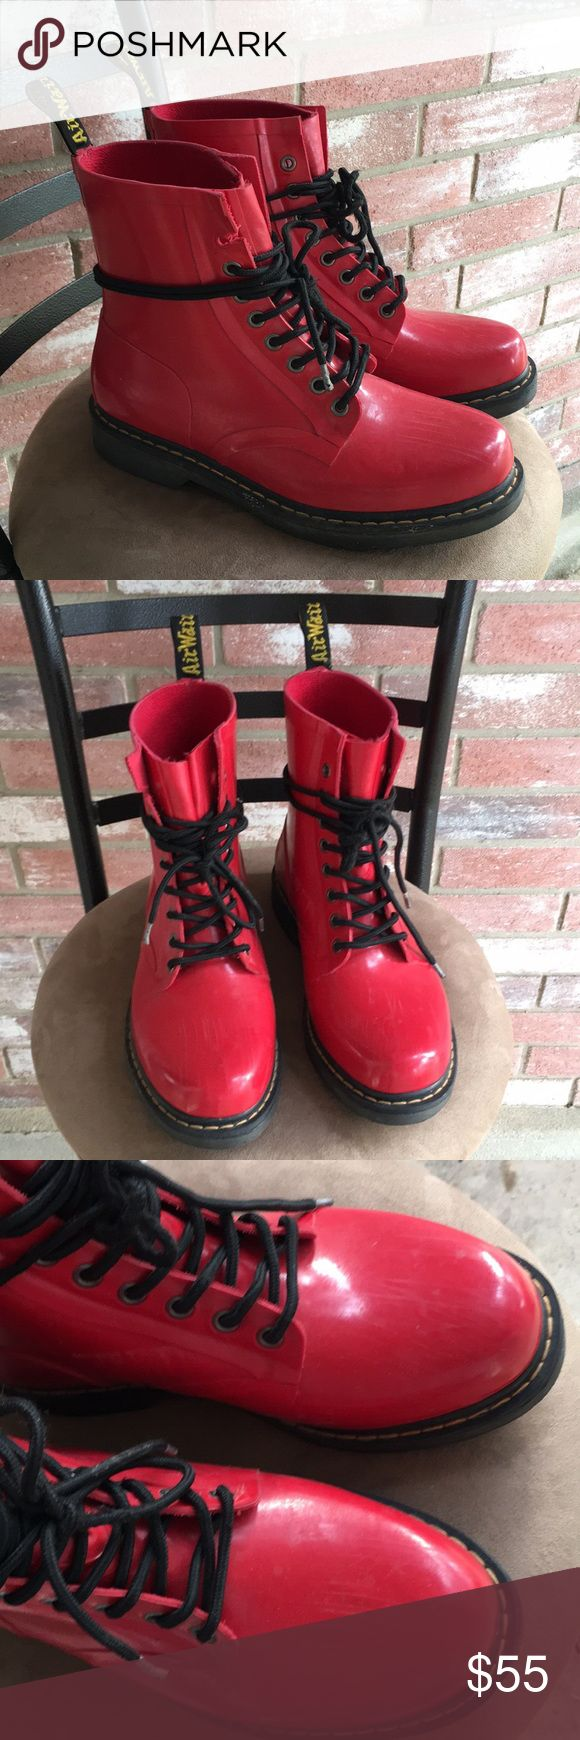 Dr. Martens Drench Wellington Boots Size 11 women's. Preowned condition. Great pair of stylish boots for the snow and rain. The top eyelet on the right boot is missing the metal ring, not at all that noticeable when wearing them (please see photos) Dr. Martens Shoes Winter & Rain Boots